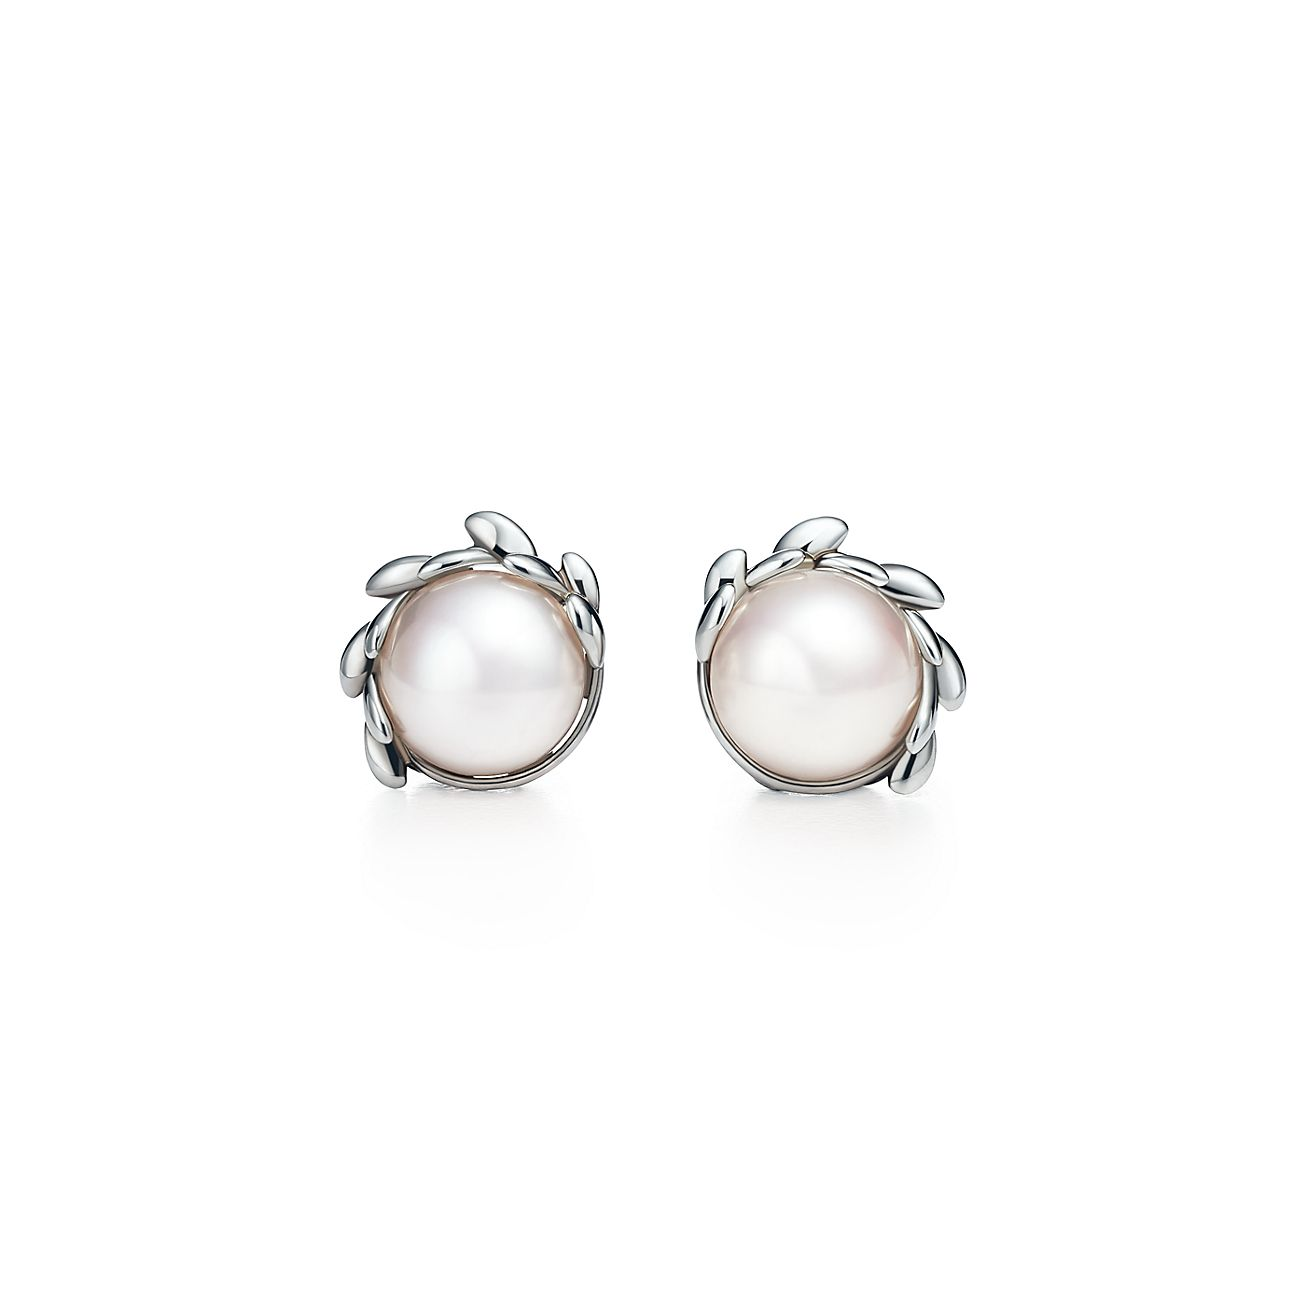 New Paloma Picasso® Olive Leaf Pearl Earrings In Sterling Silver